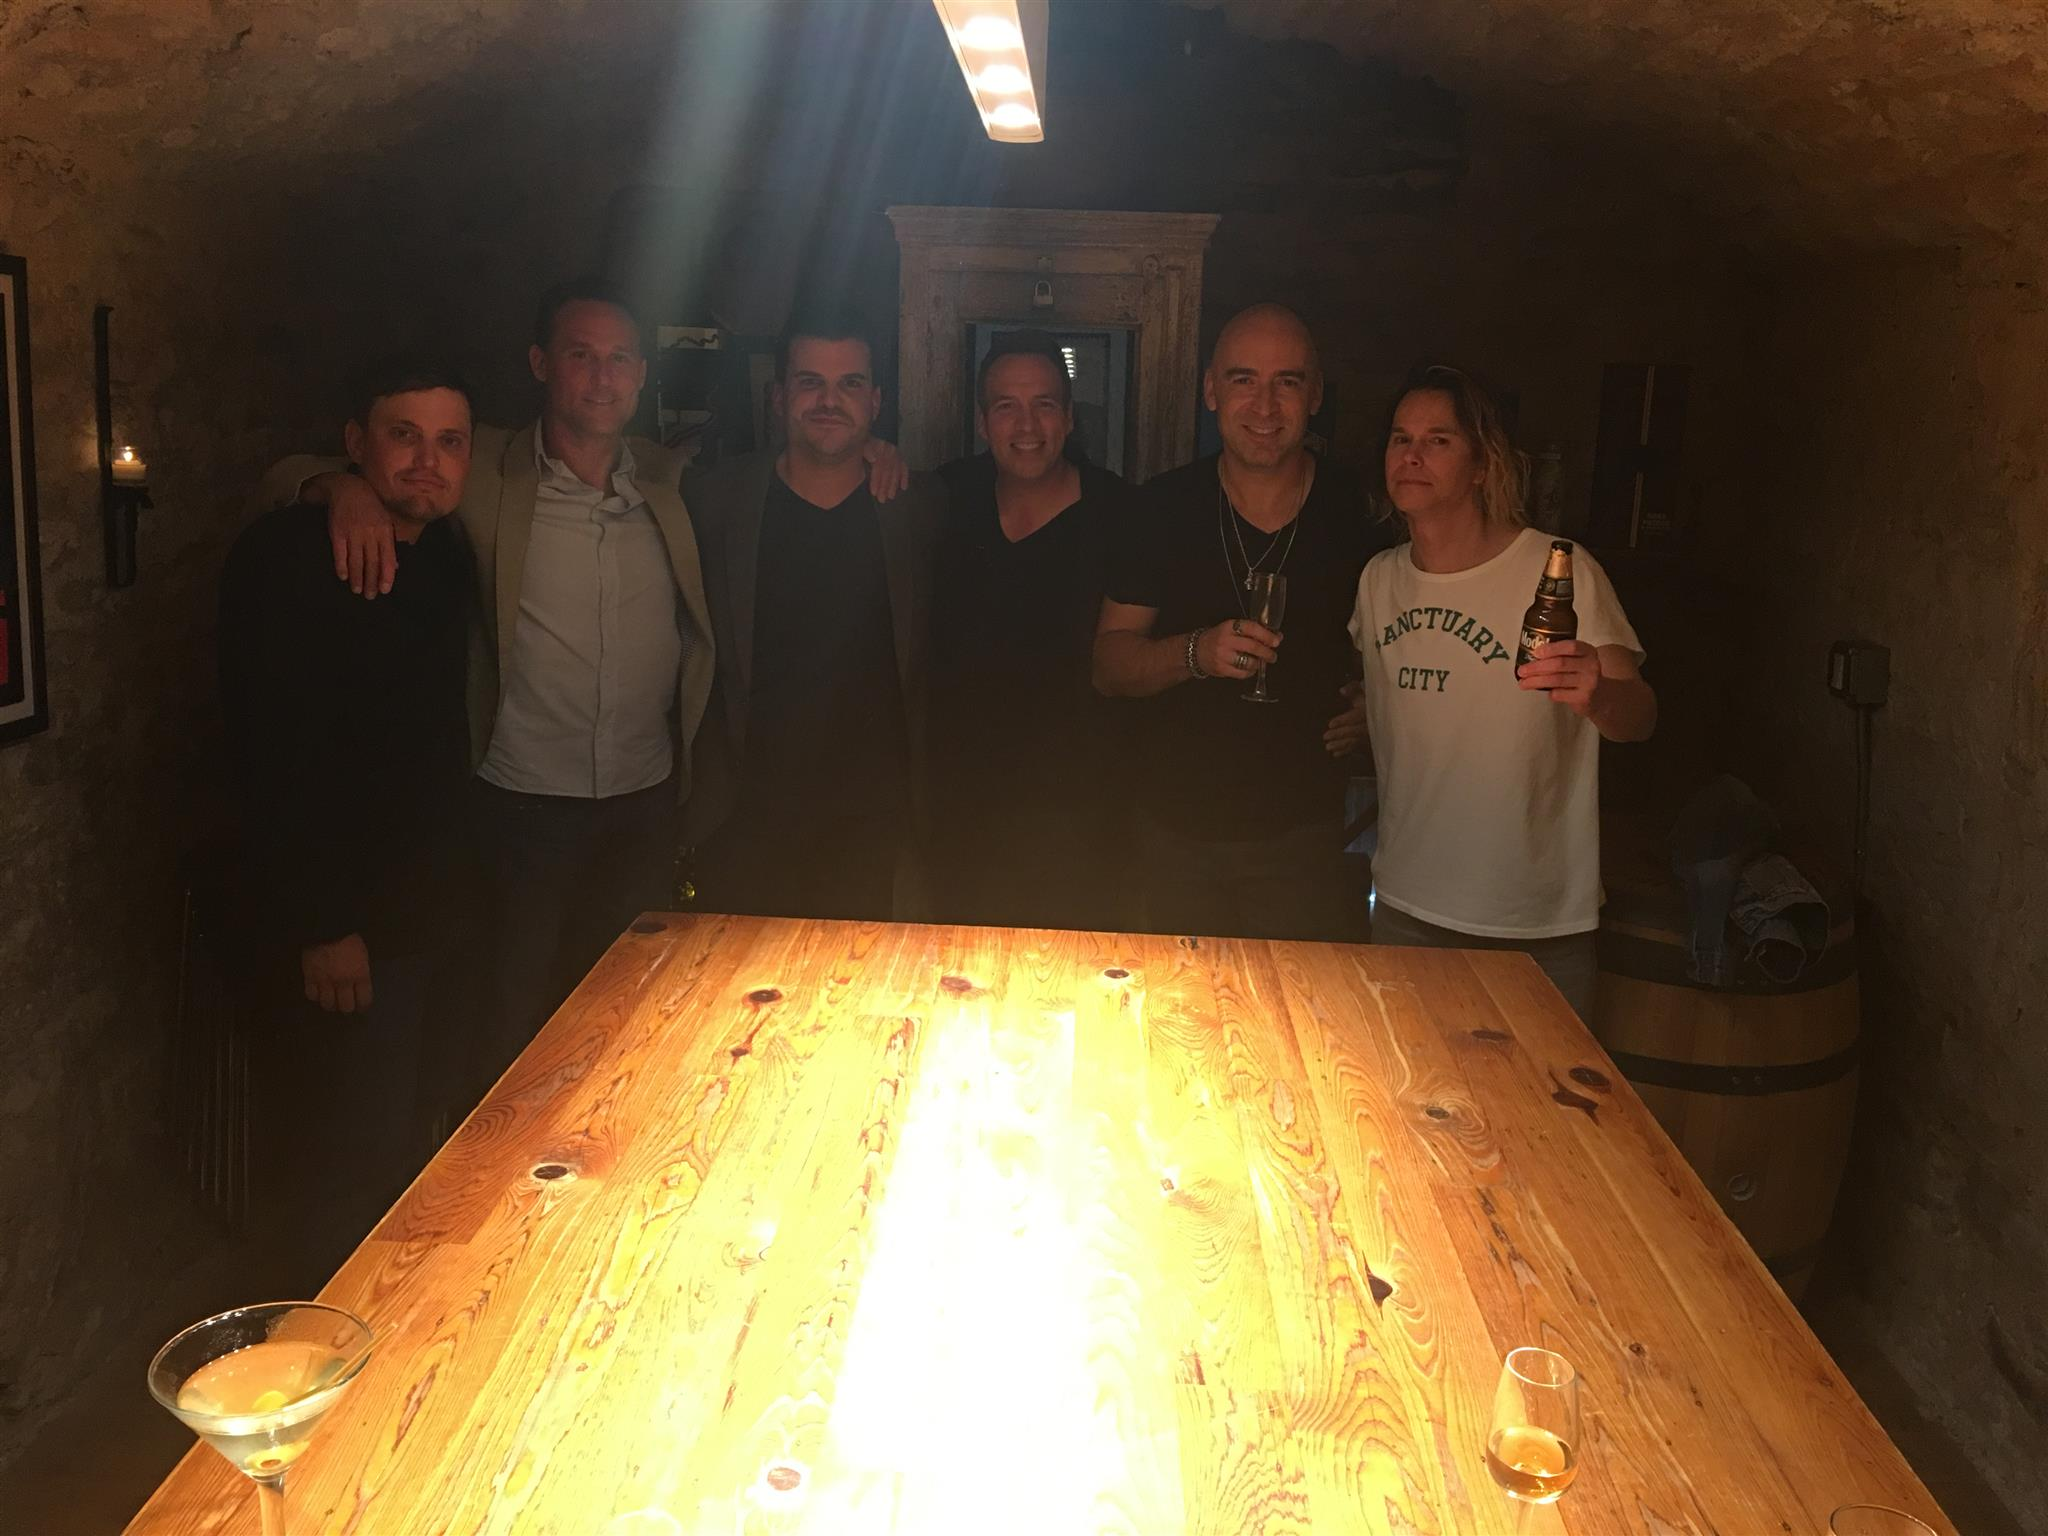 Dinner with Ed Kowalczyk and friends